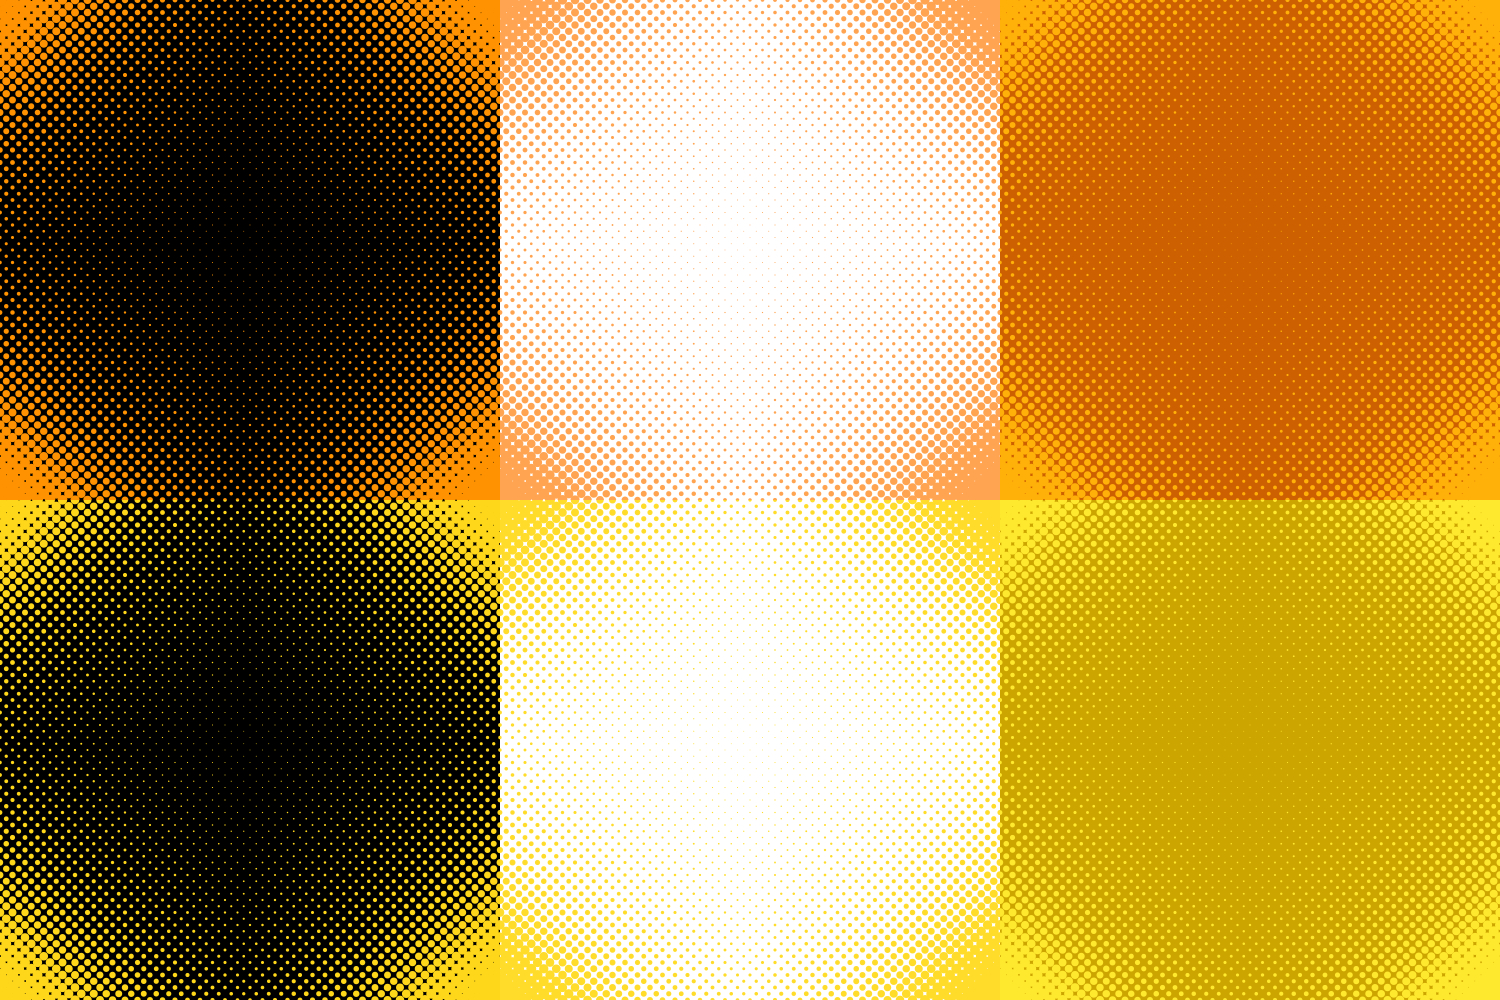 30 Halftone Circle Backgrounds AI, EPS, JPG 5000x5000 example image 4